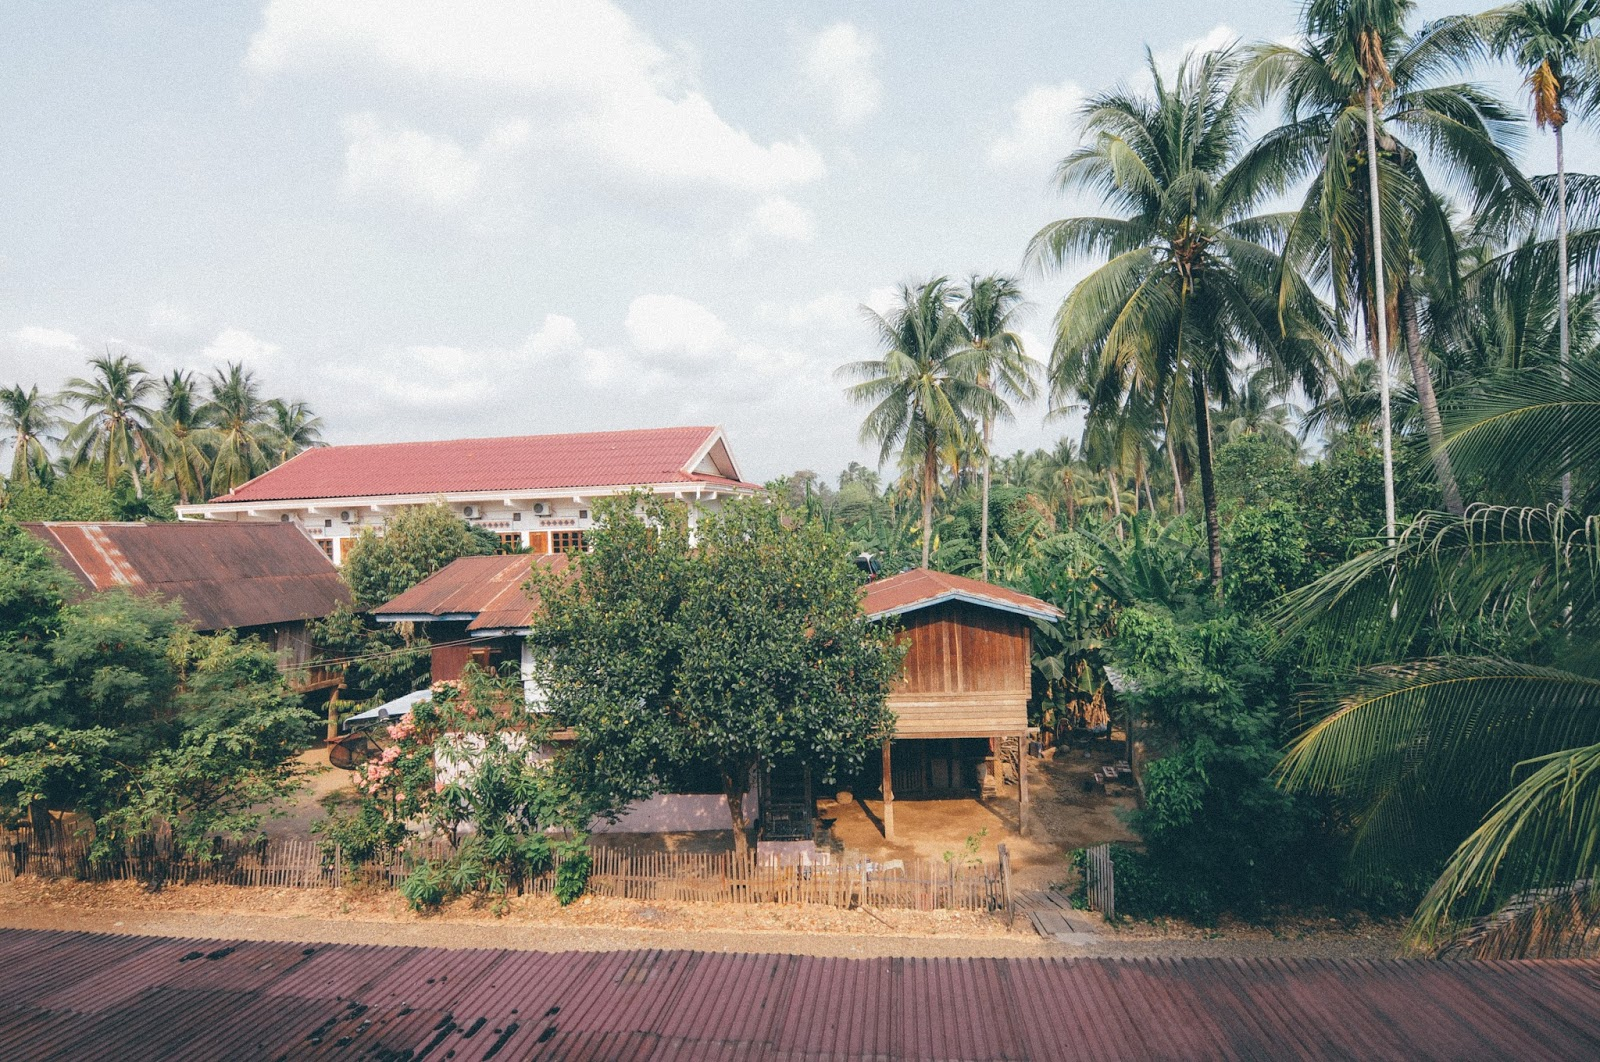 Phouthavong Guesthouse Attapeu